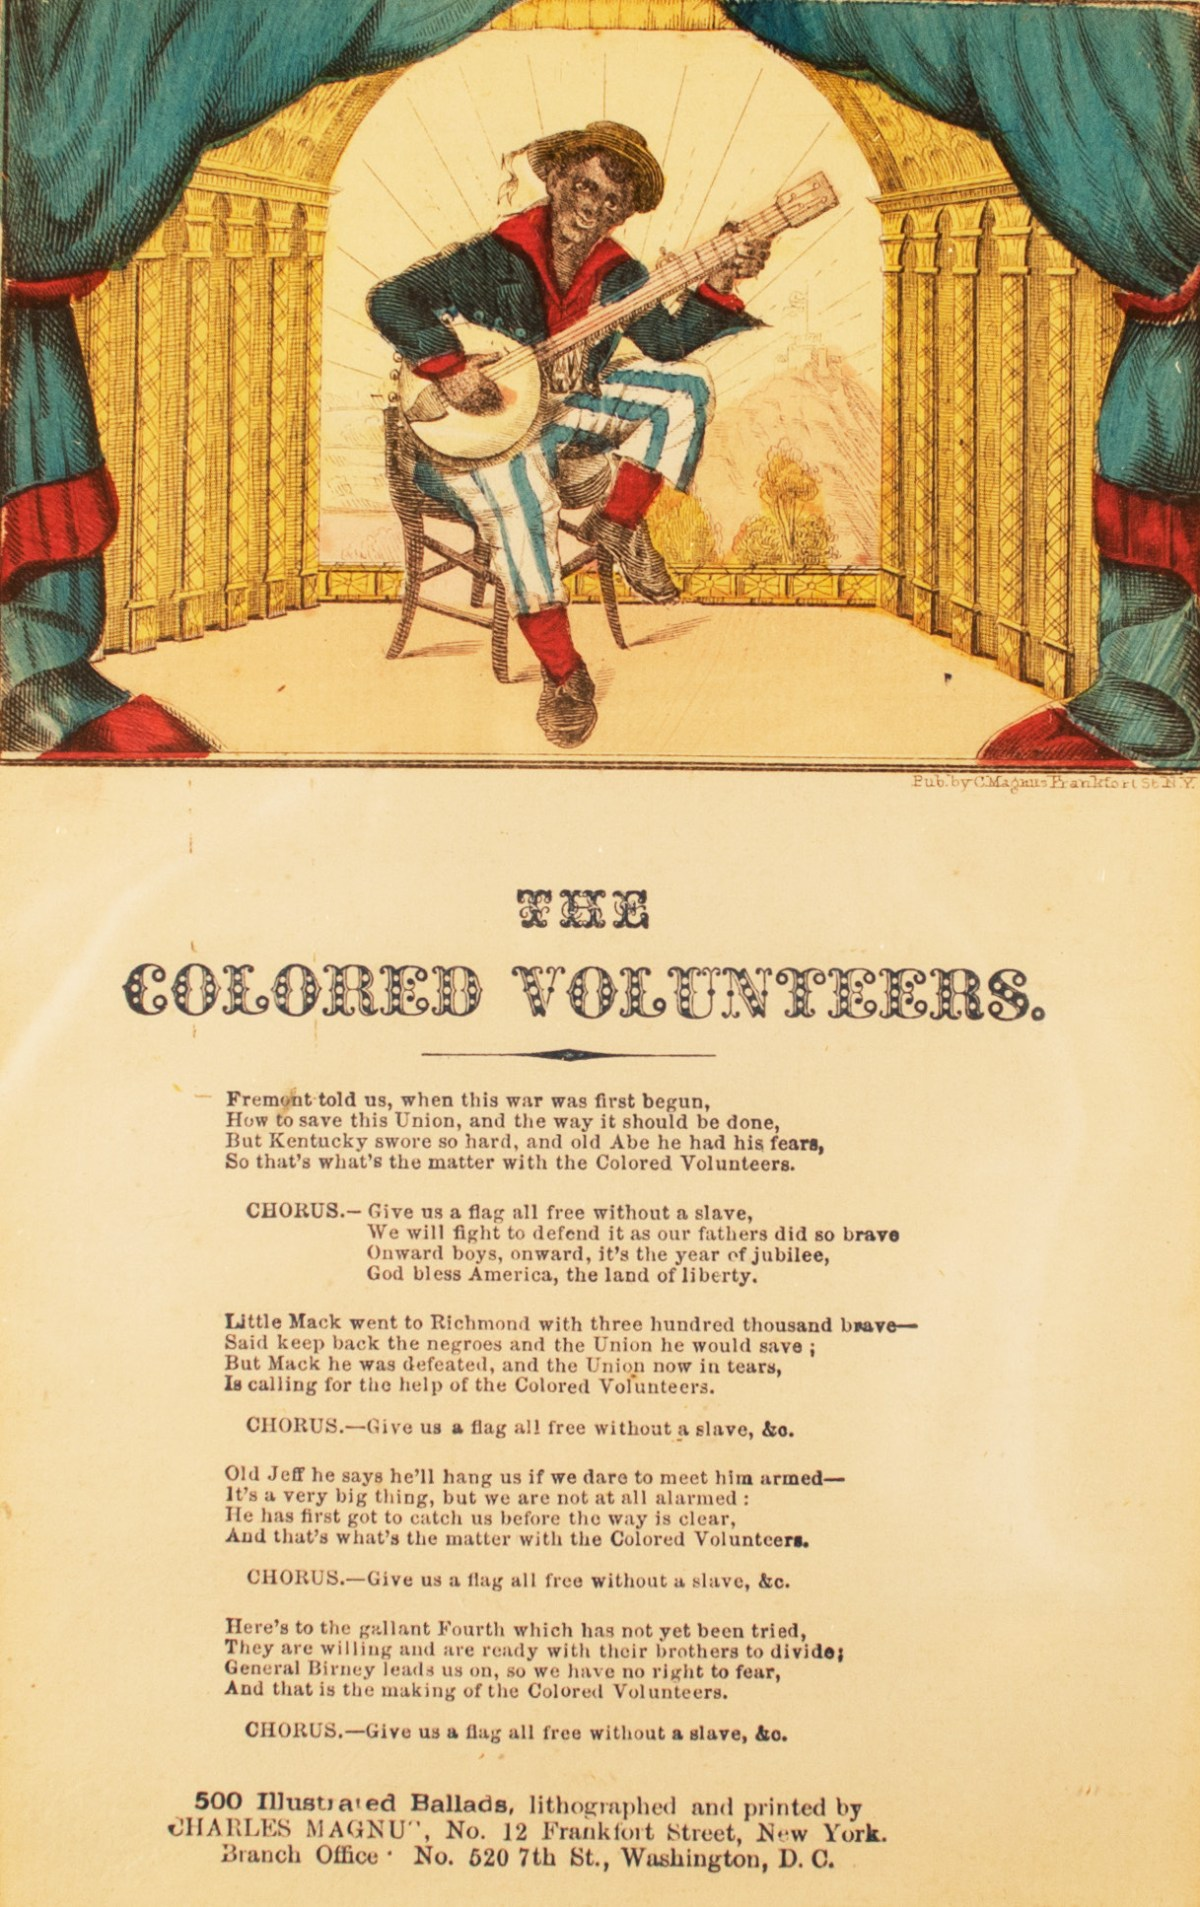 """""""The Colored Volunteers"""":  A Recruiting Tune for the USCT"""